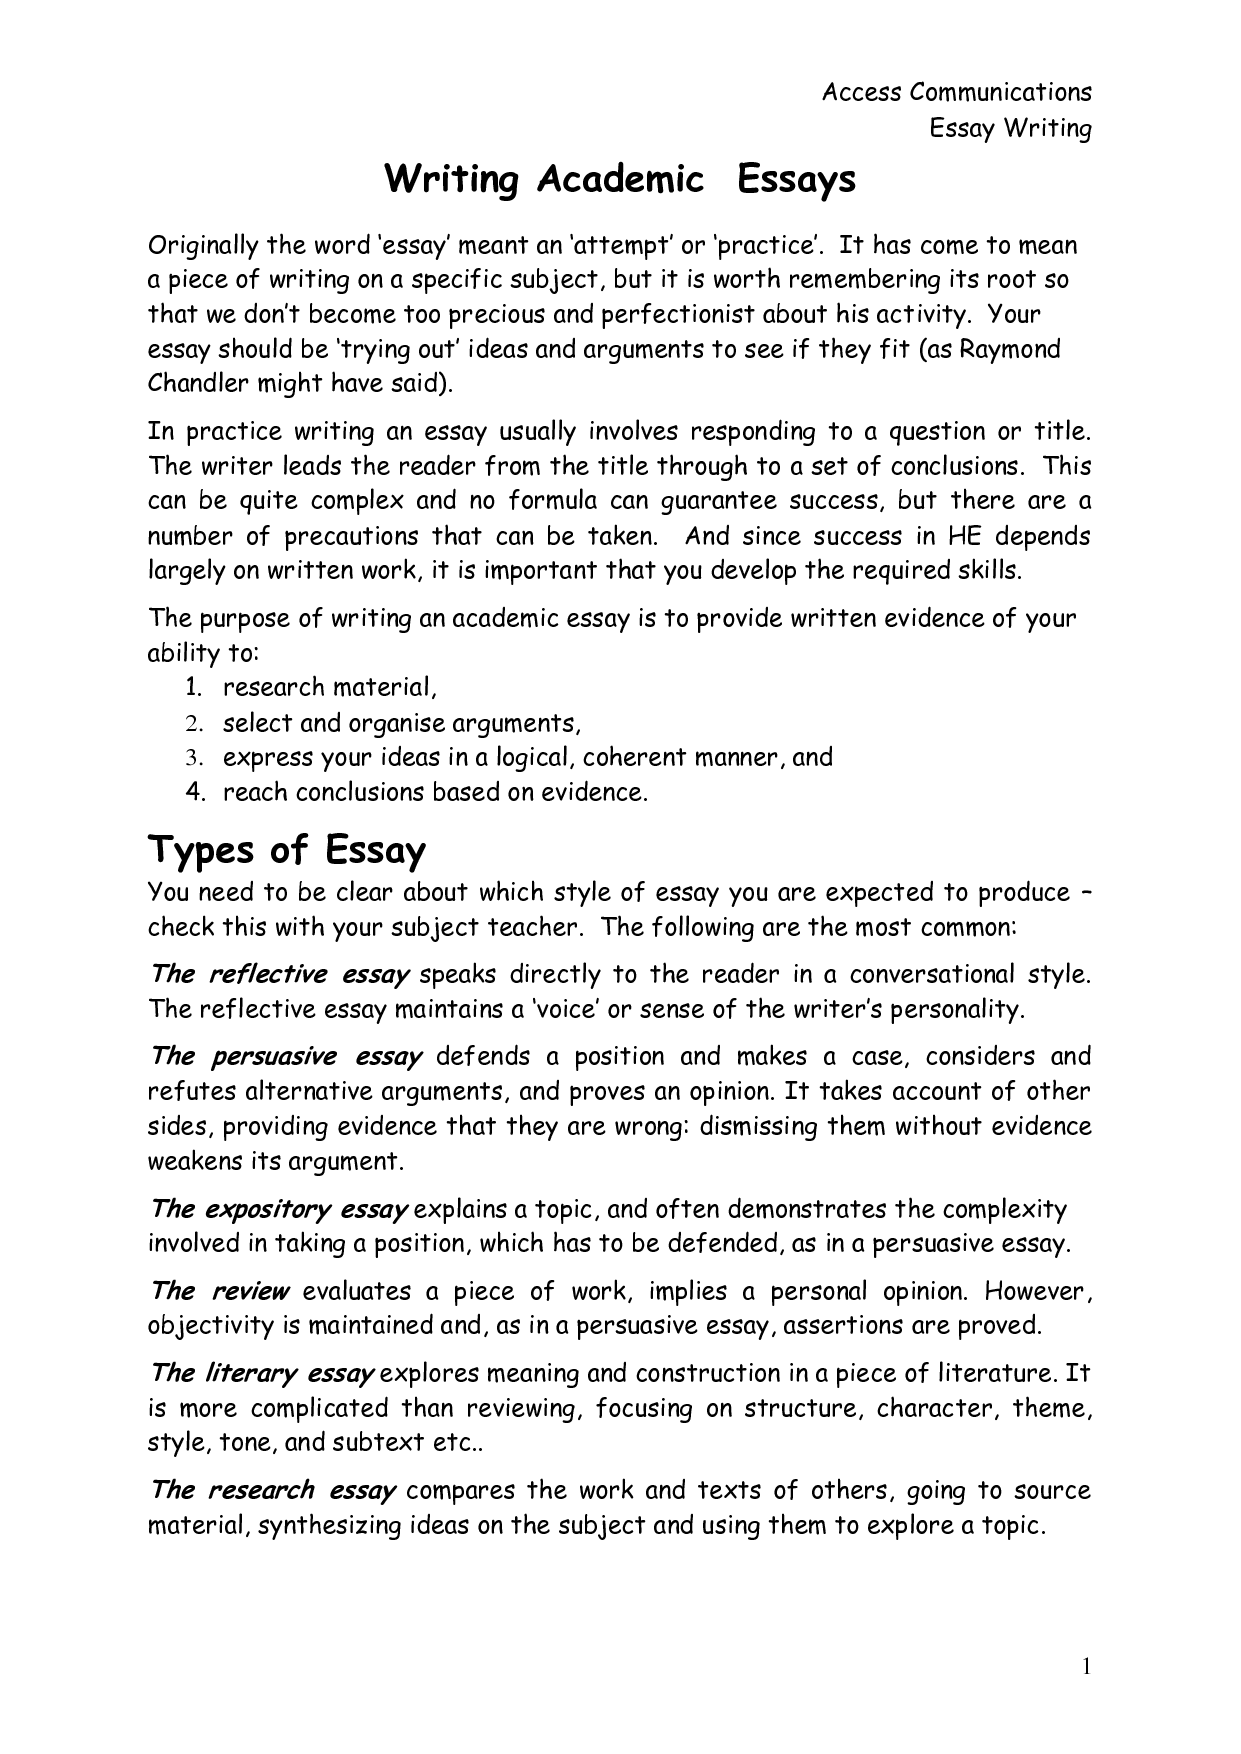 001 Essay Example What Is Good Academic To Write About Awful Writing Structure Skills Pdf Full